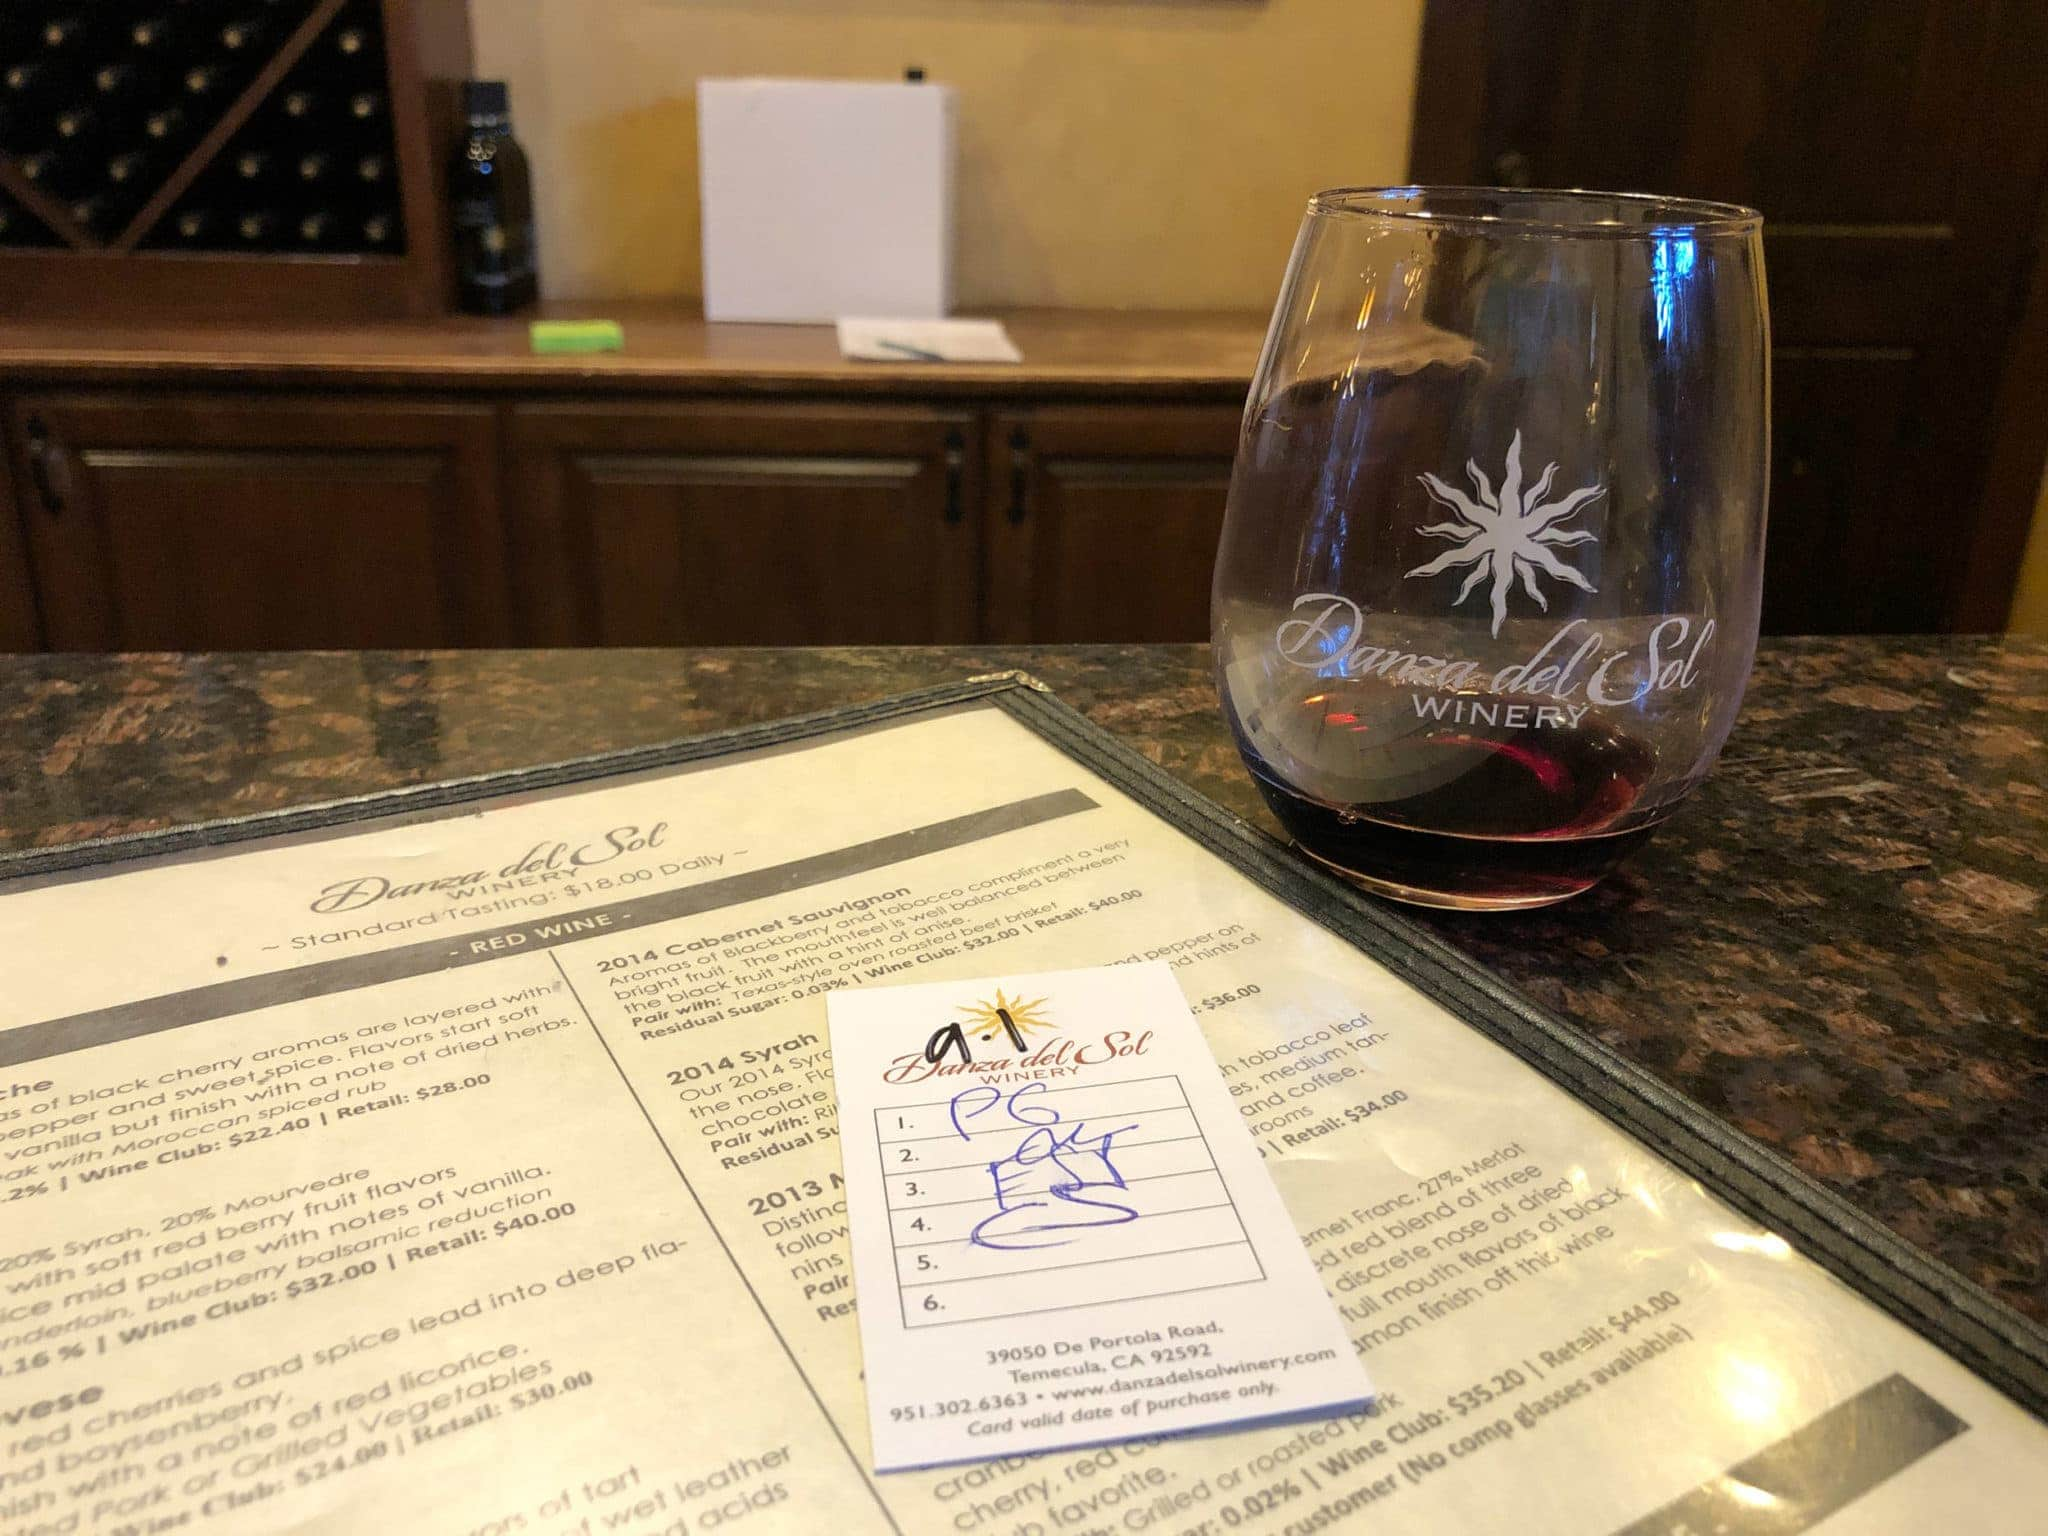 Wine tasting in Temecula, California